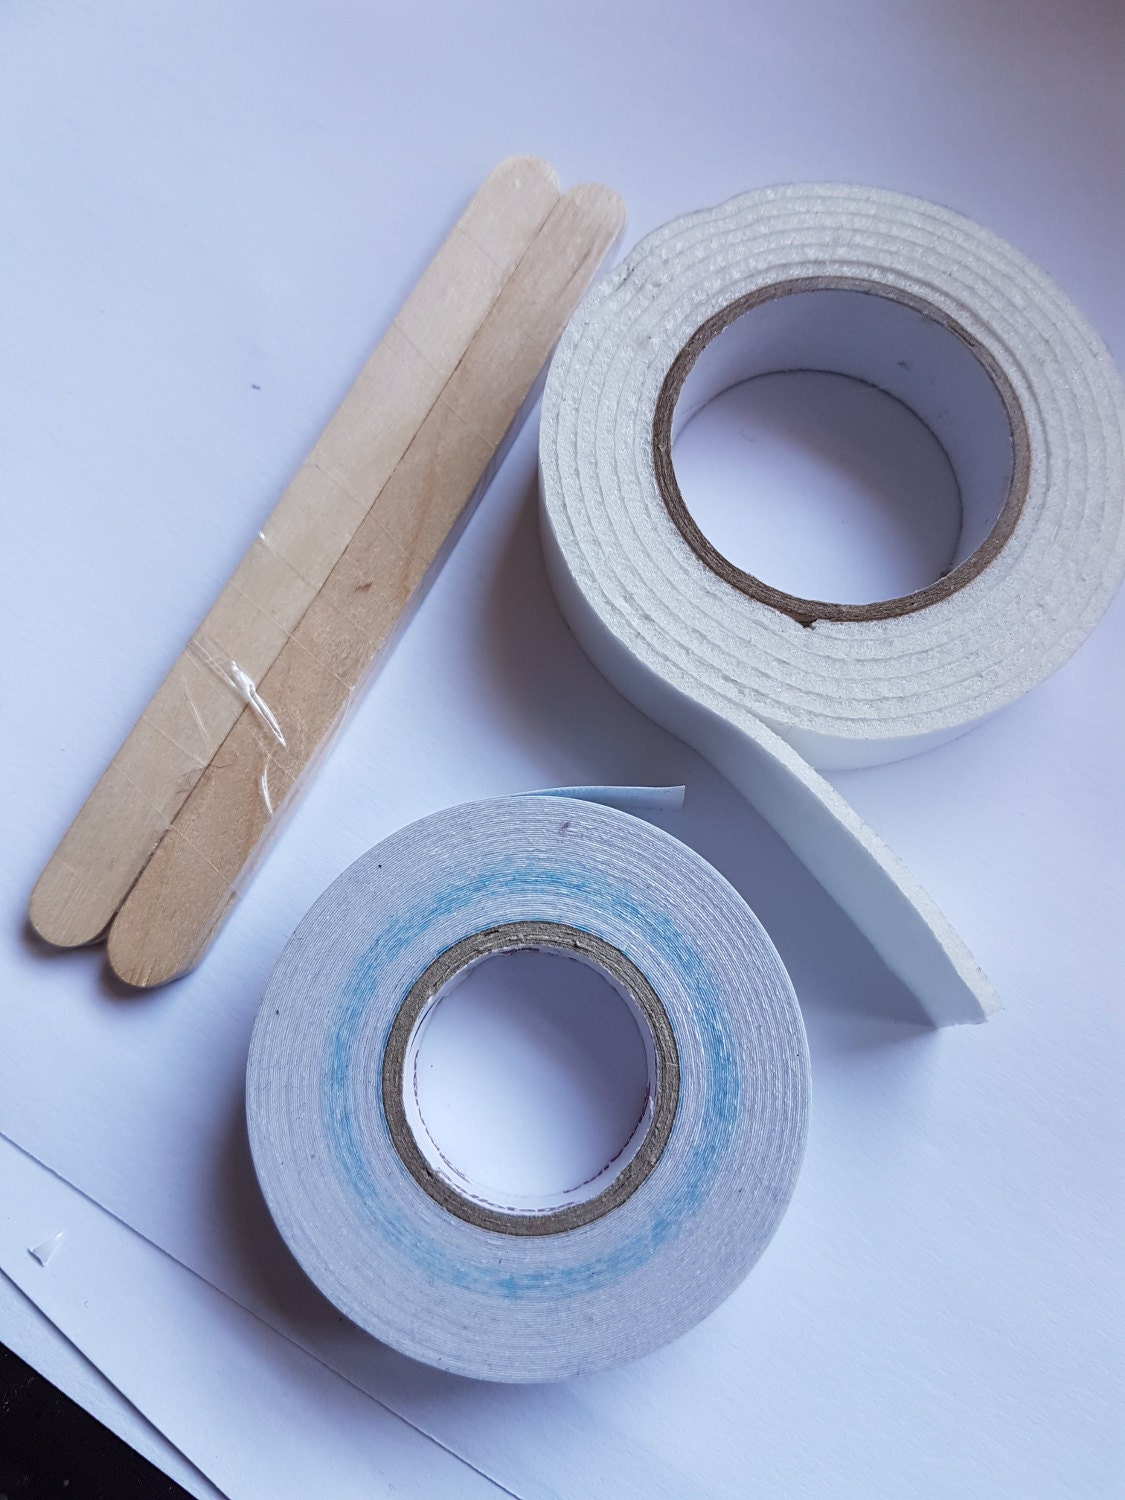 Paddle pop sticks, mounting tape and double sided tape